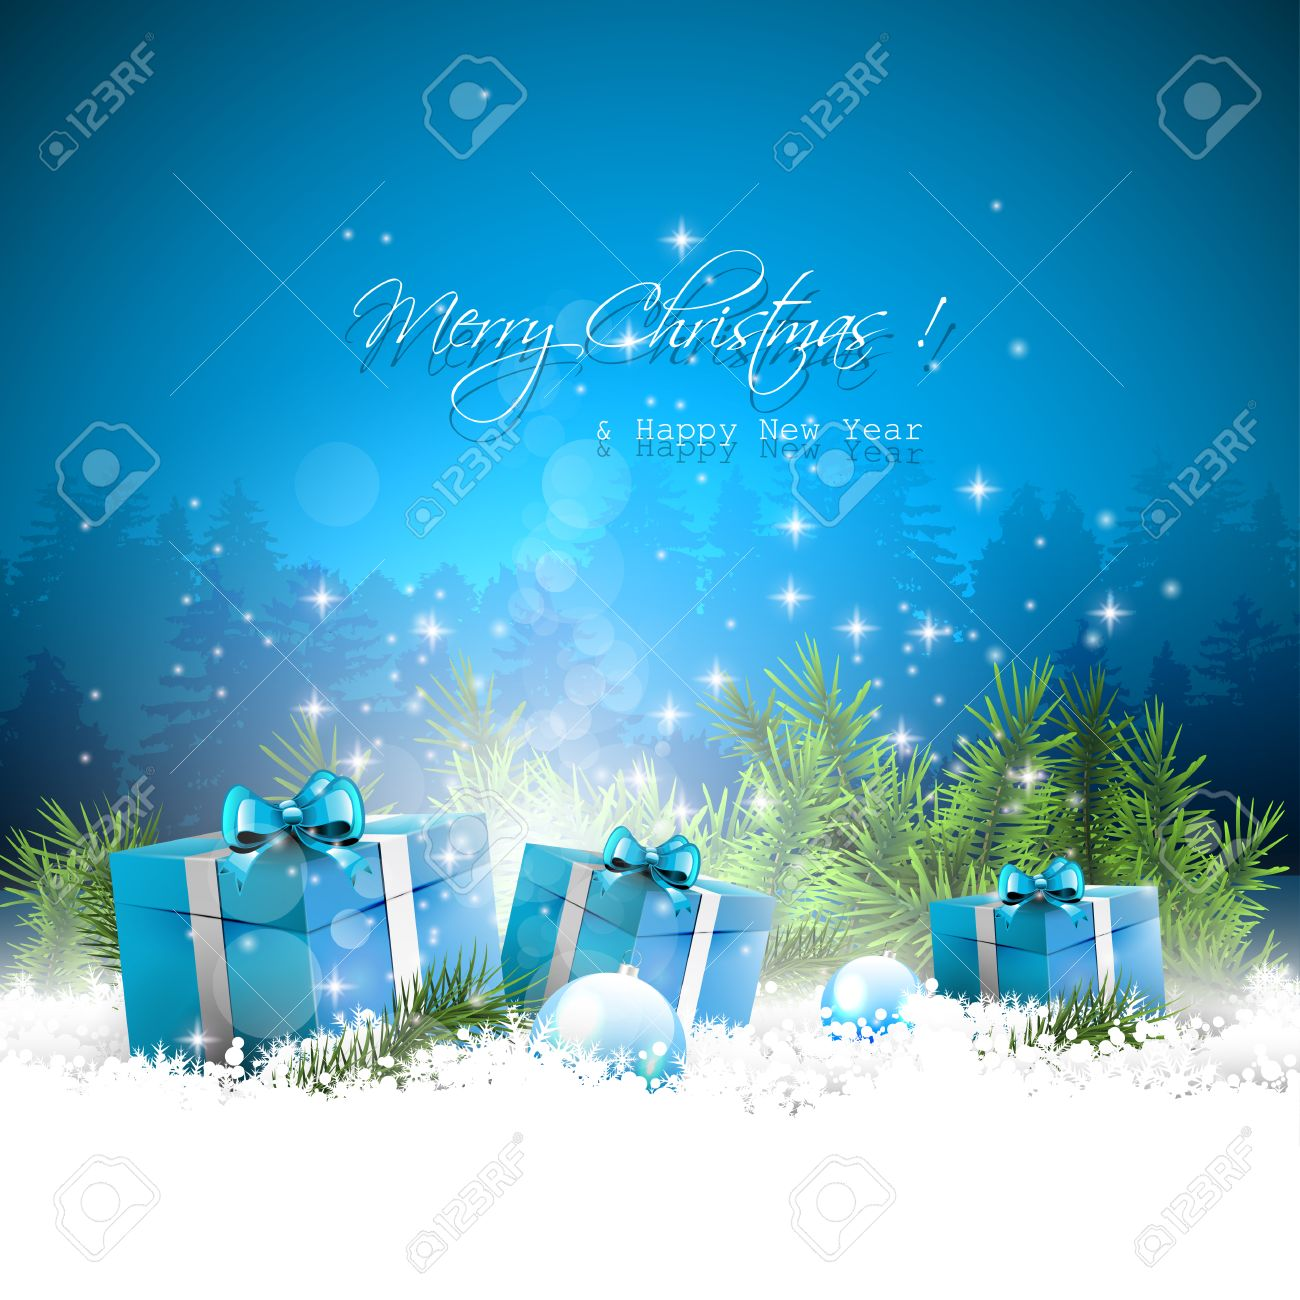 Christmas Card Picture Christmas Card Stock Photos Pictures Royalty Free Christmas